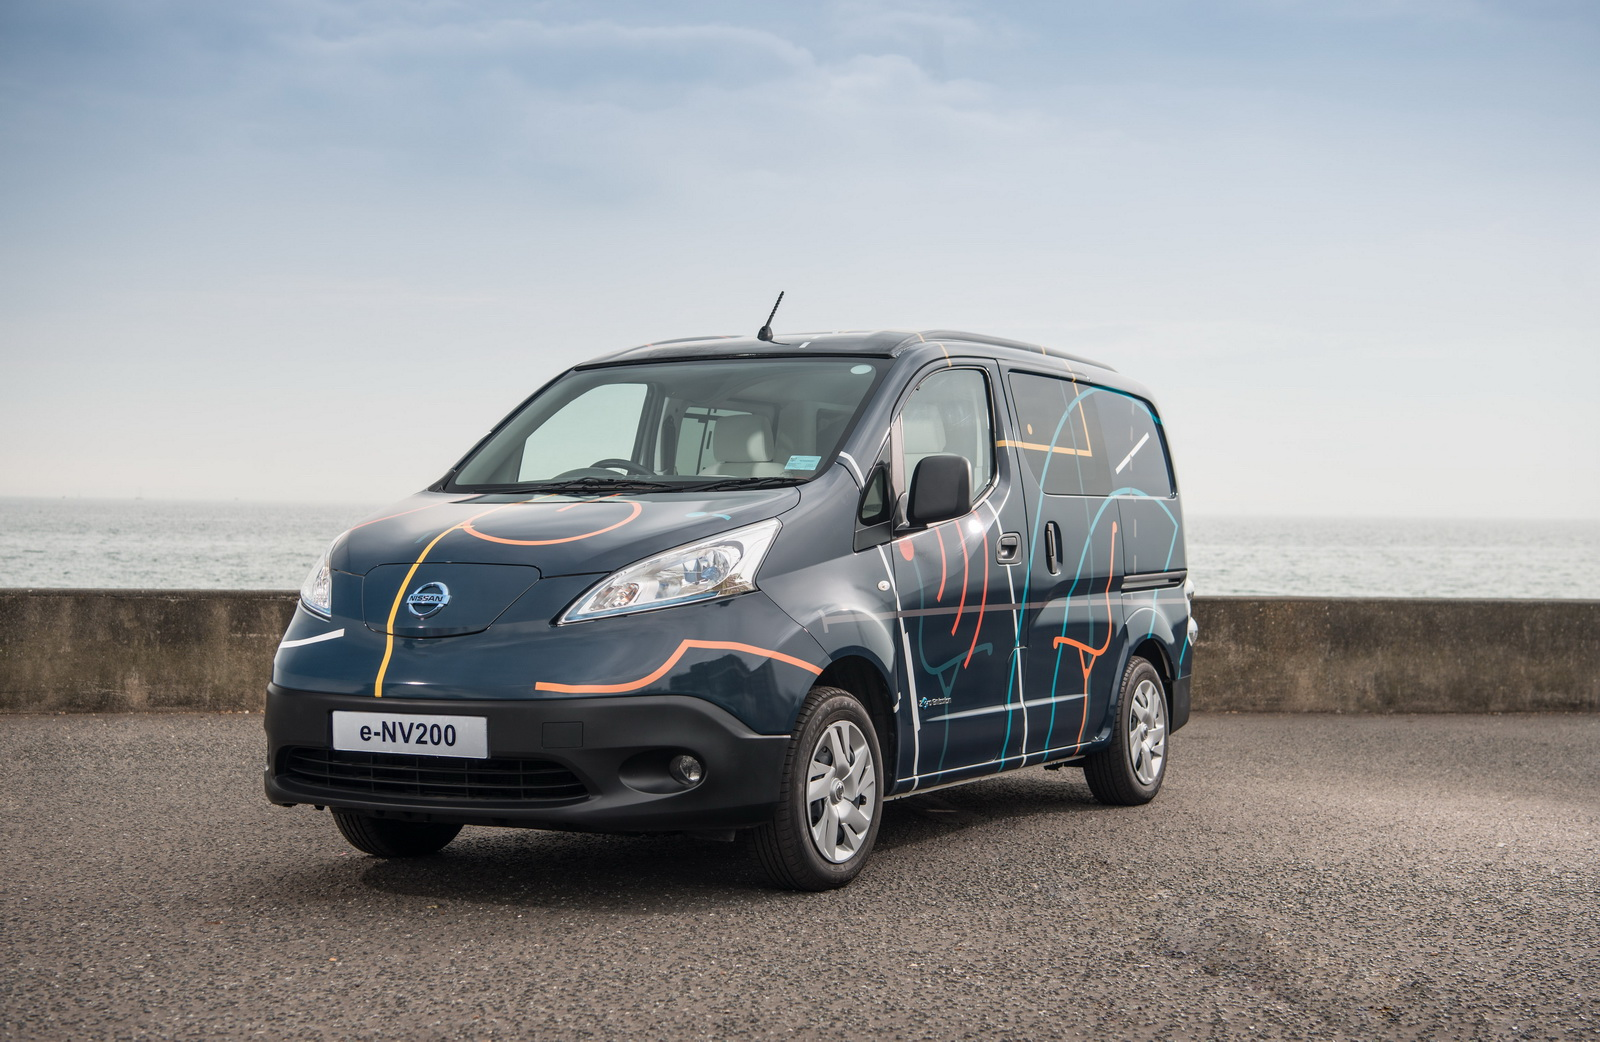 nissan just turned an electric e nv200 into a cool mobile office 28 pics videos. Black Bedroom Furniture Sets. Home Design Ideas